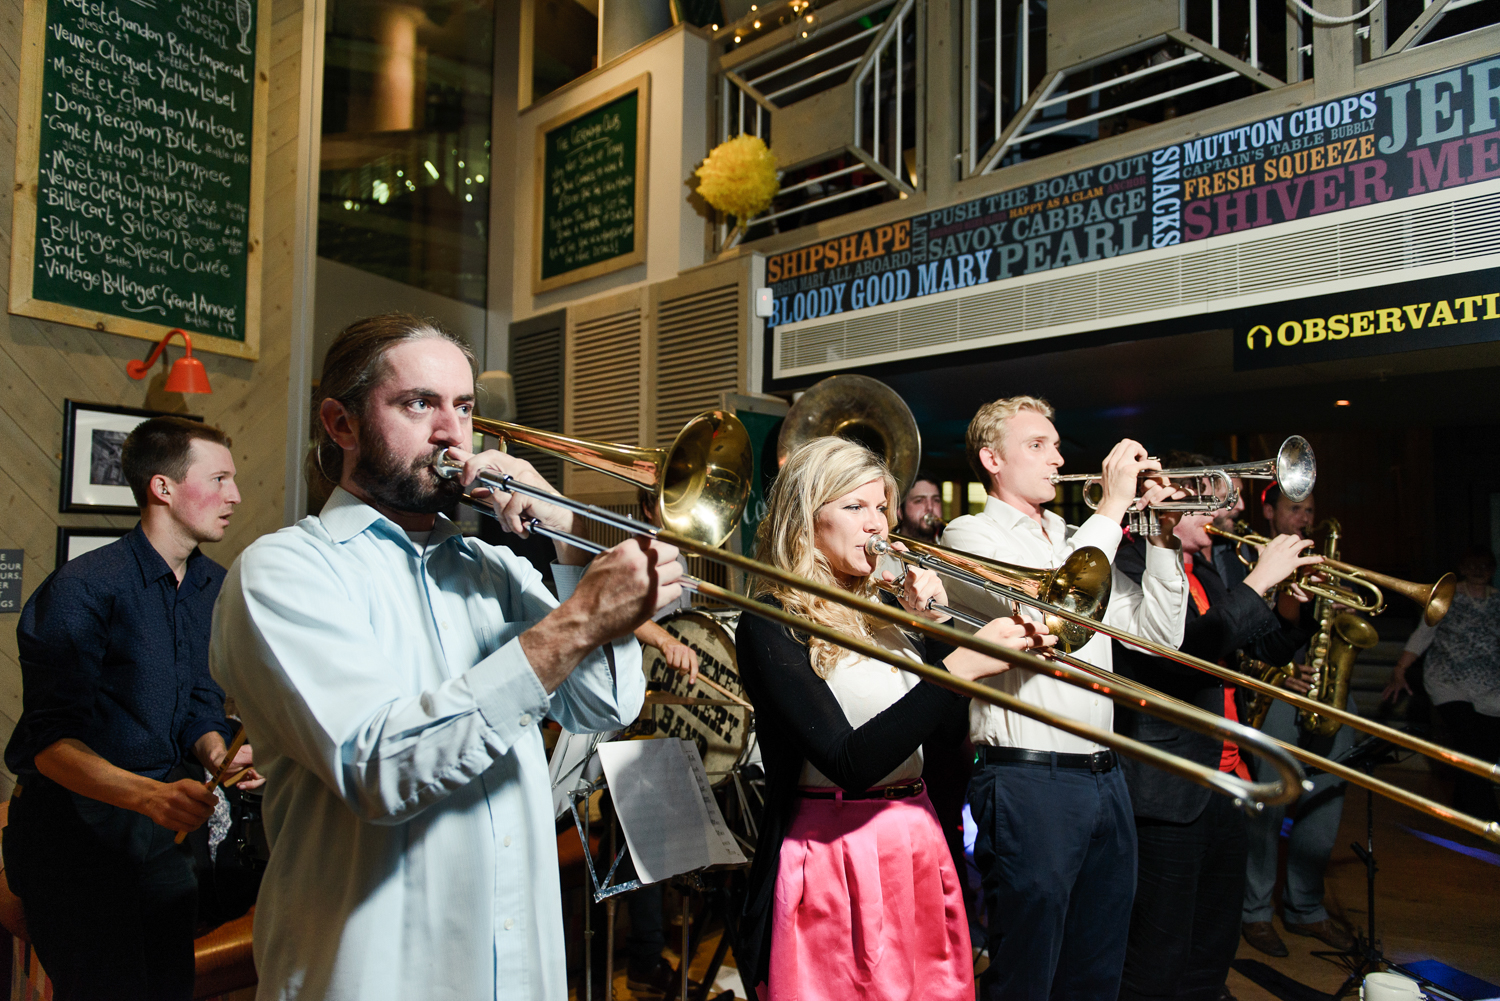 London-wedding-at-Oyster-Shed-and-on-the-tube-with-Hackney-Colliery-Band-©-Rhapsody-Road-Photography-Emma-Lambe1-36.jpg